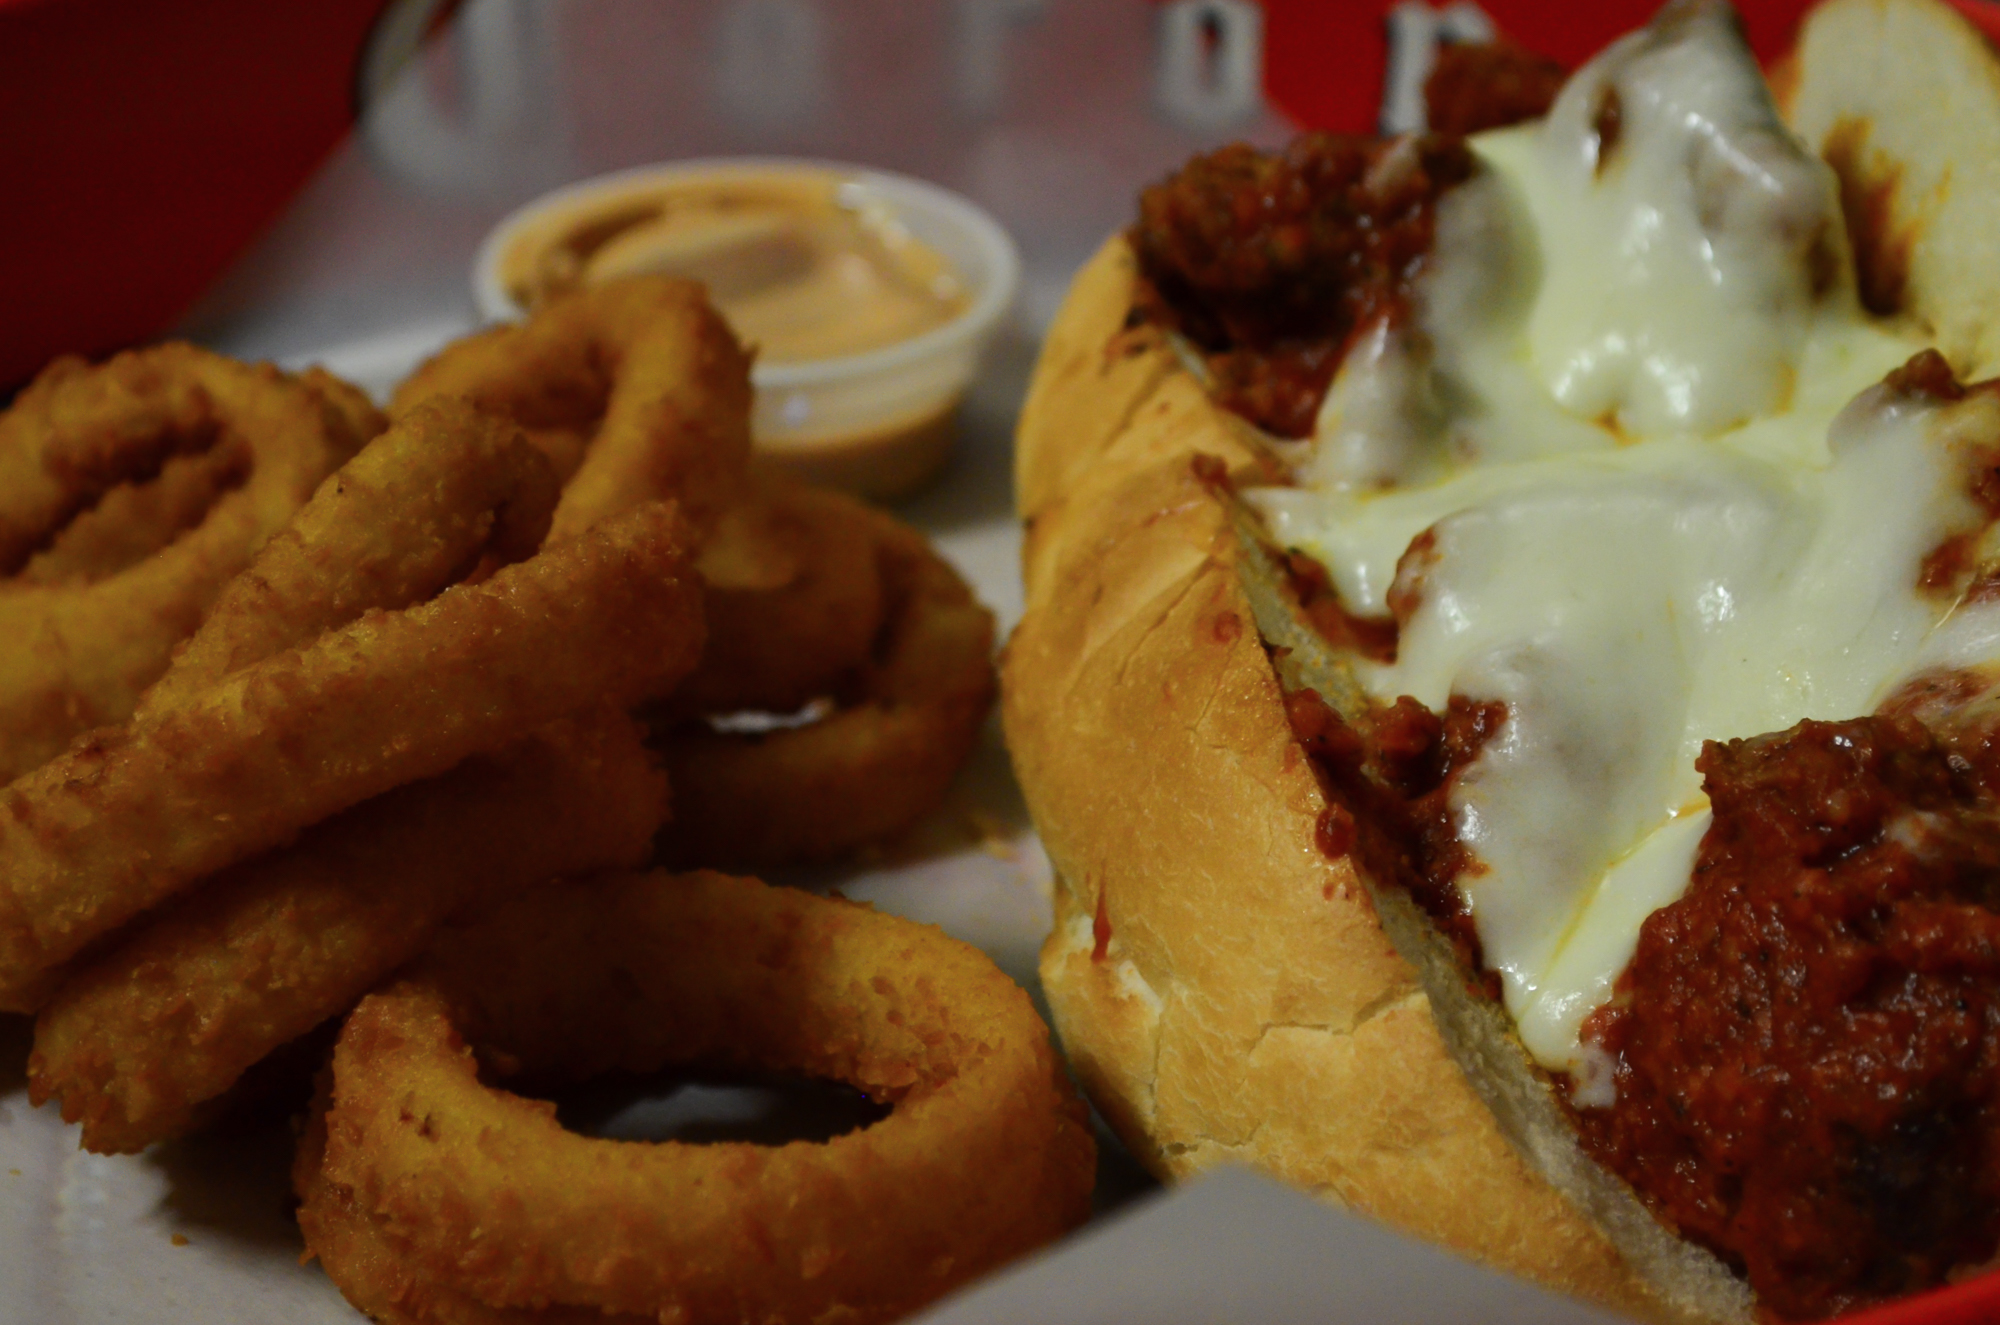 Meatball parmesan sub with a side of onion rings.